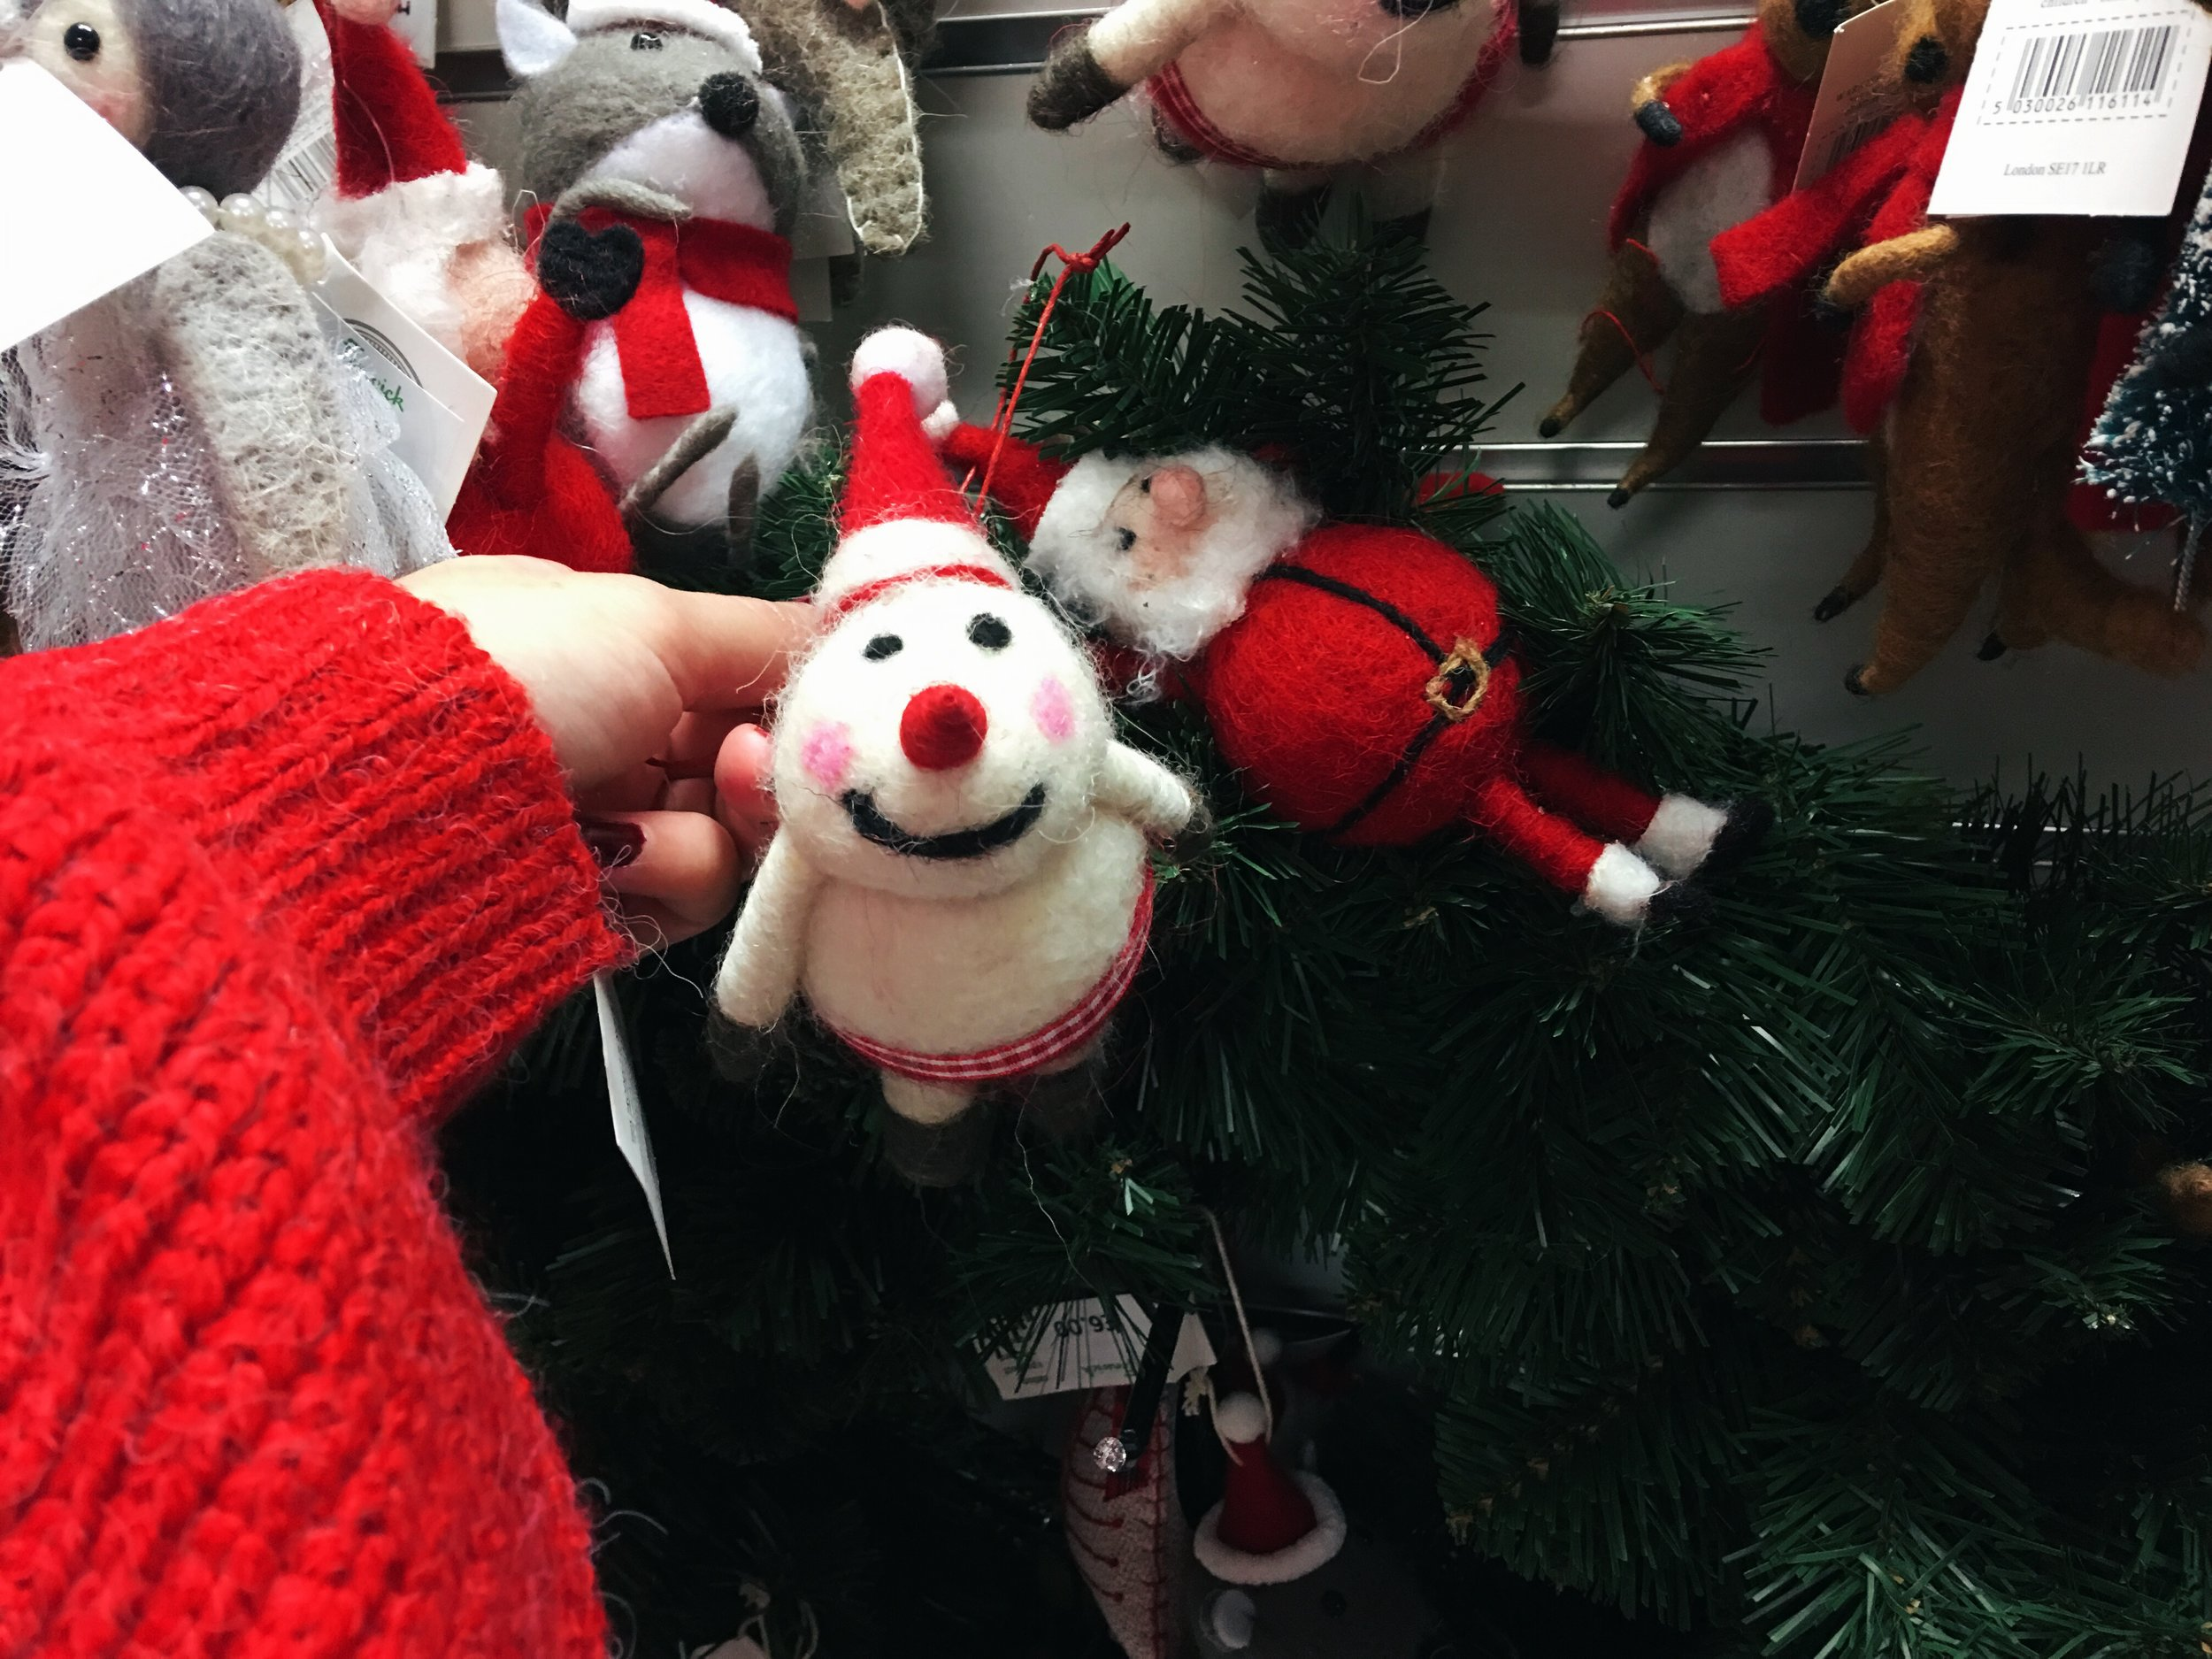 I completely fell in love with this chubby snowman and his rosy cheeks -